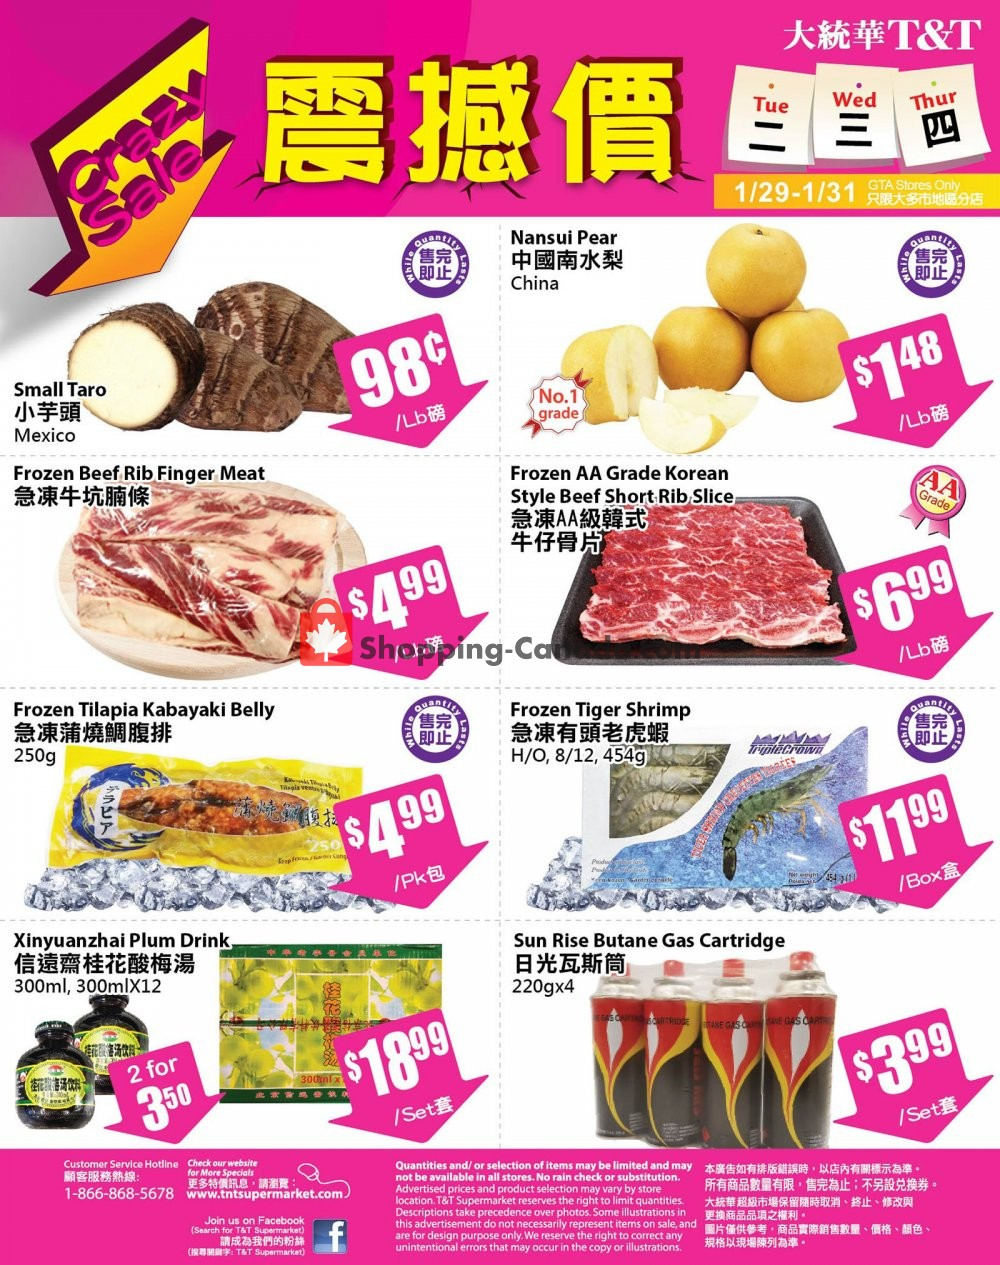 Flyer T&T Supermarket Canada - from Tuesday January 29, 2019 to Thursday January 31, 2019